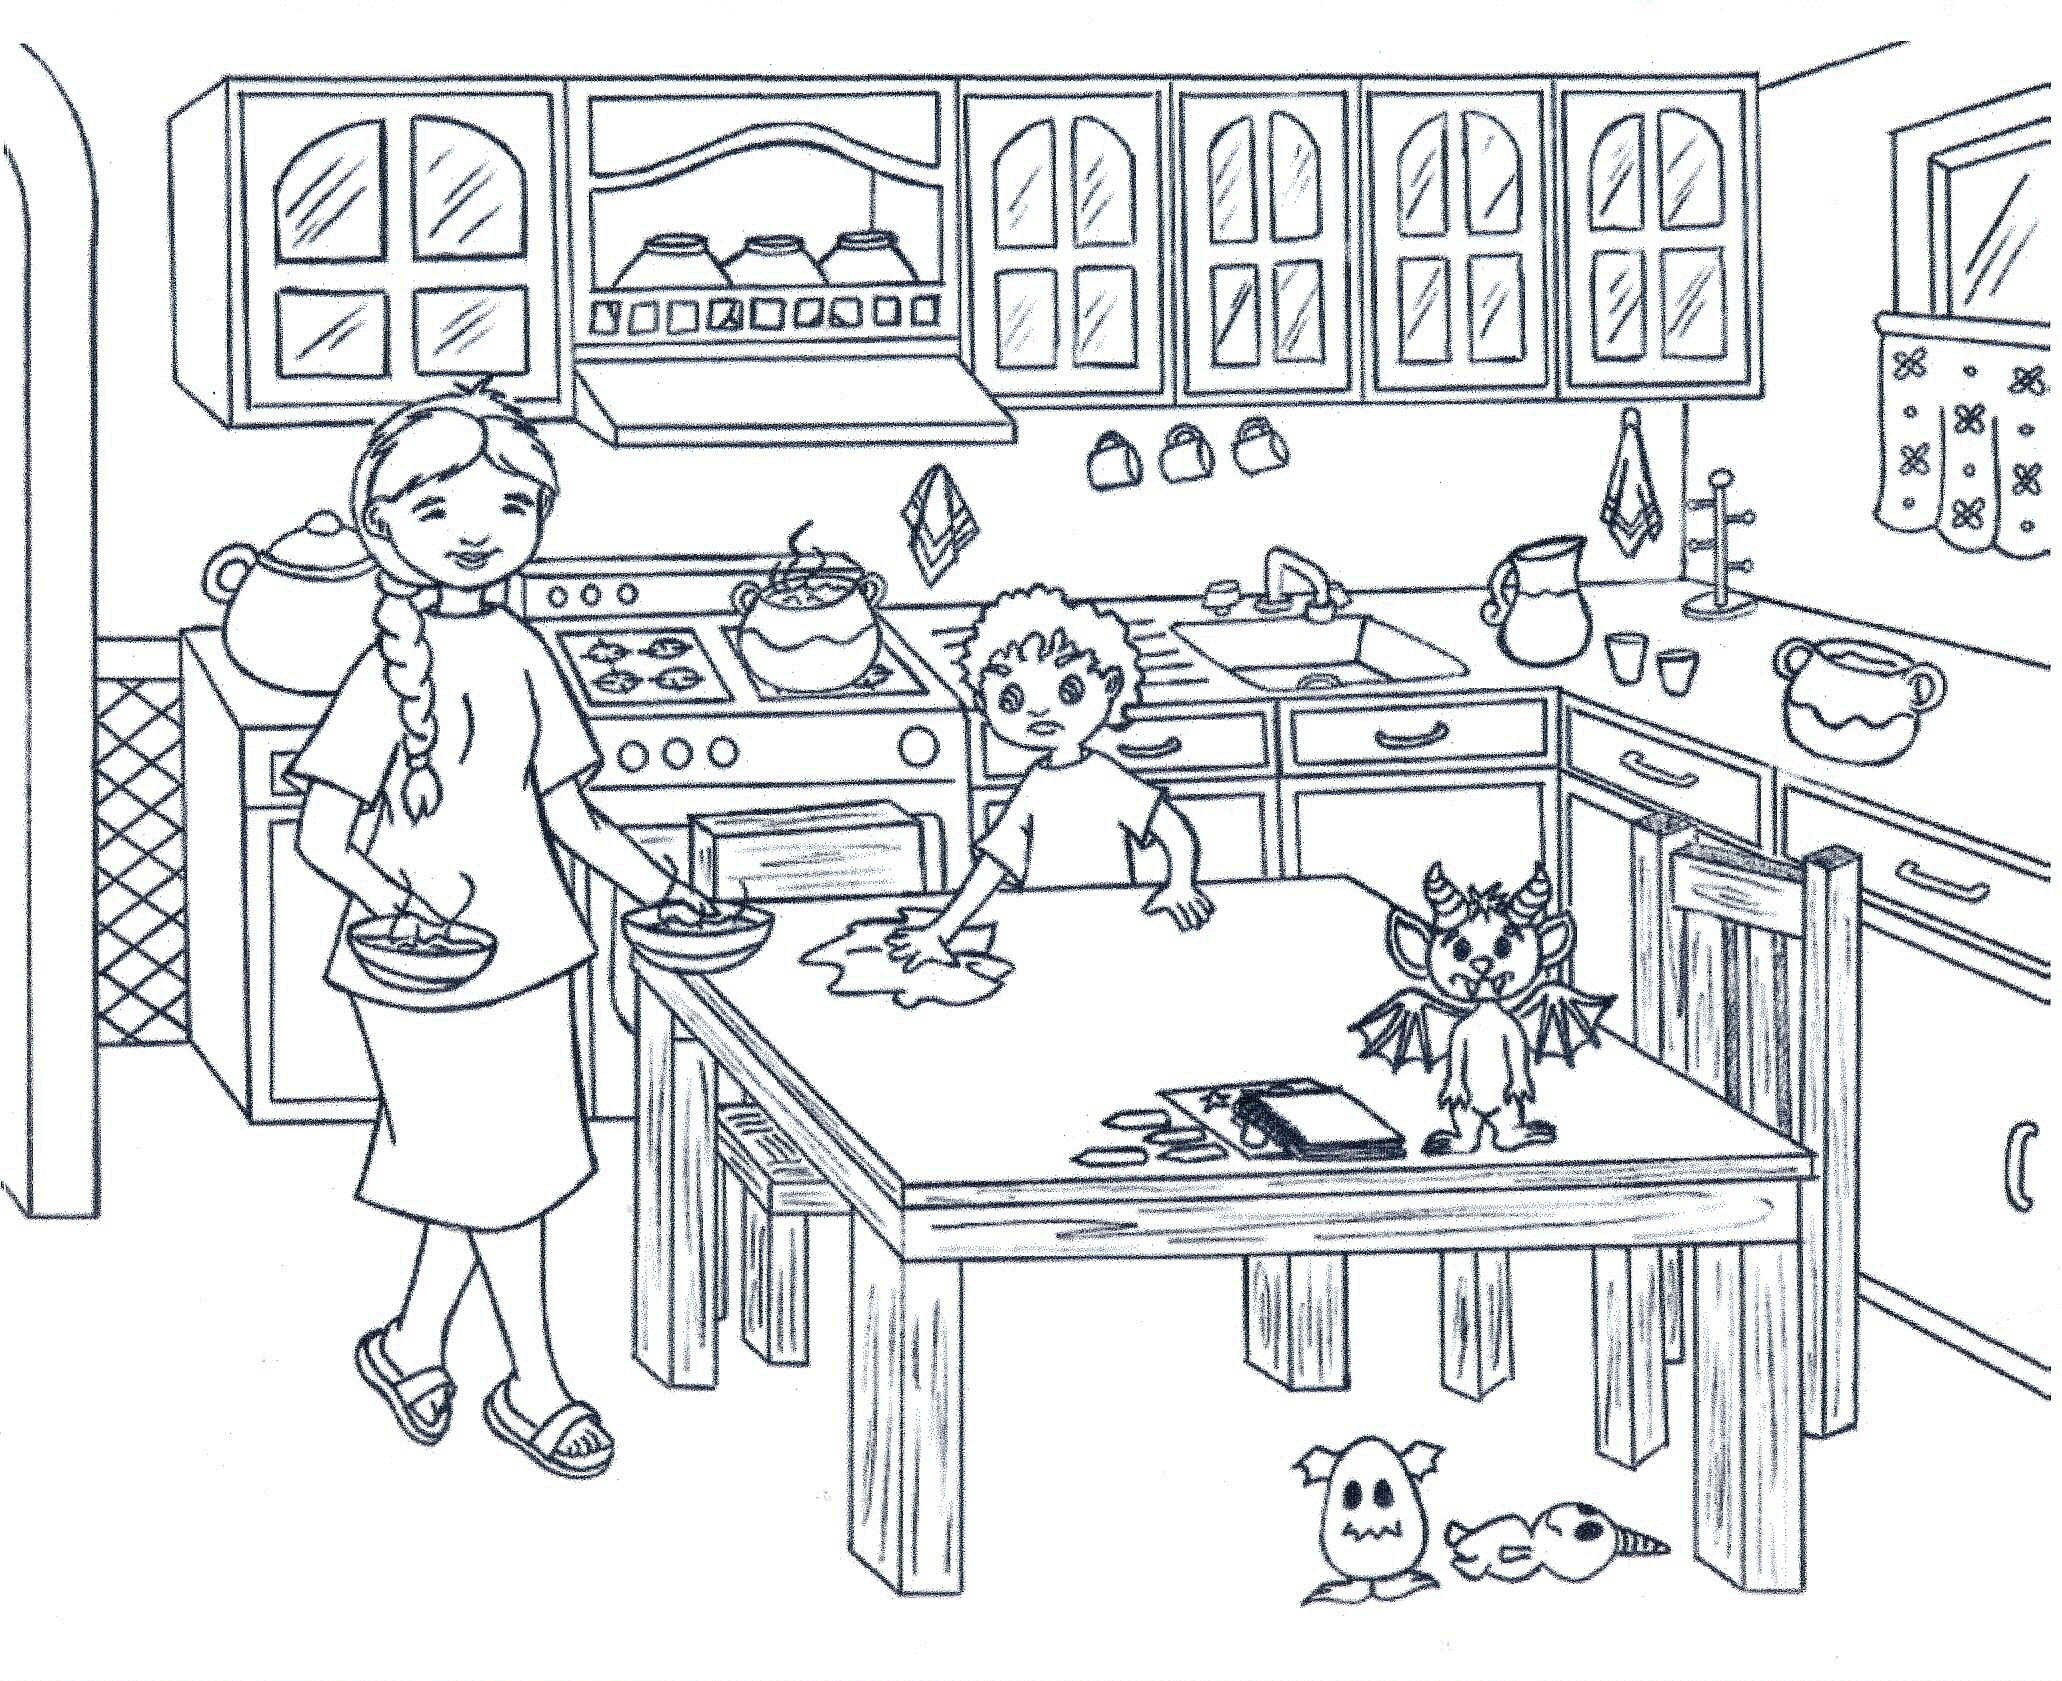 coloring pages kitchen Only Coloring Pages